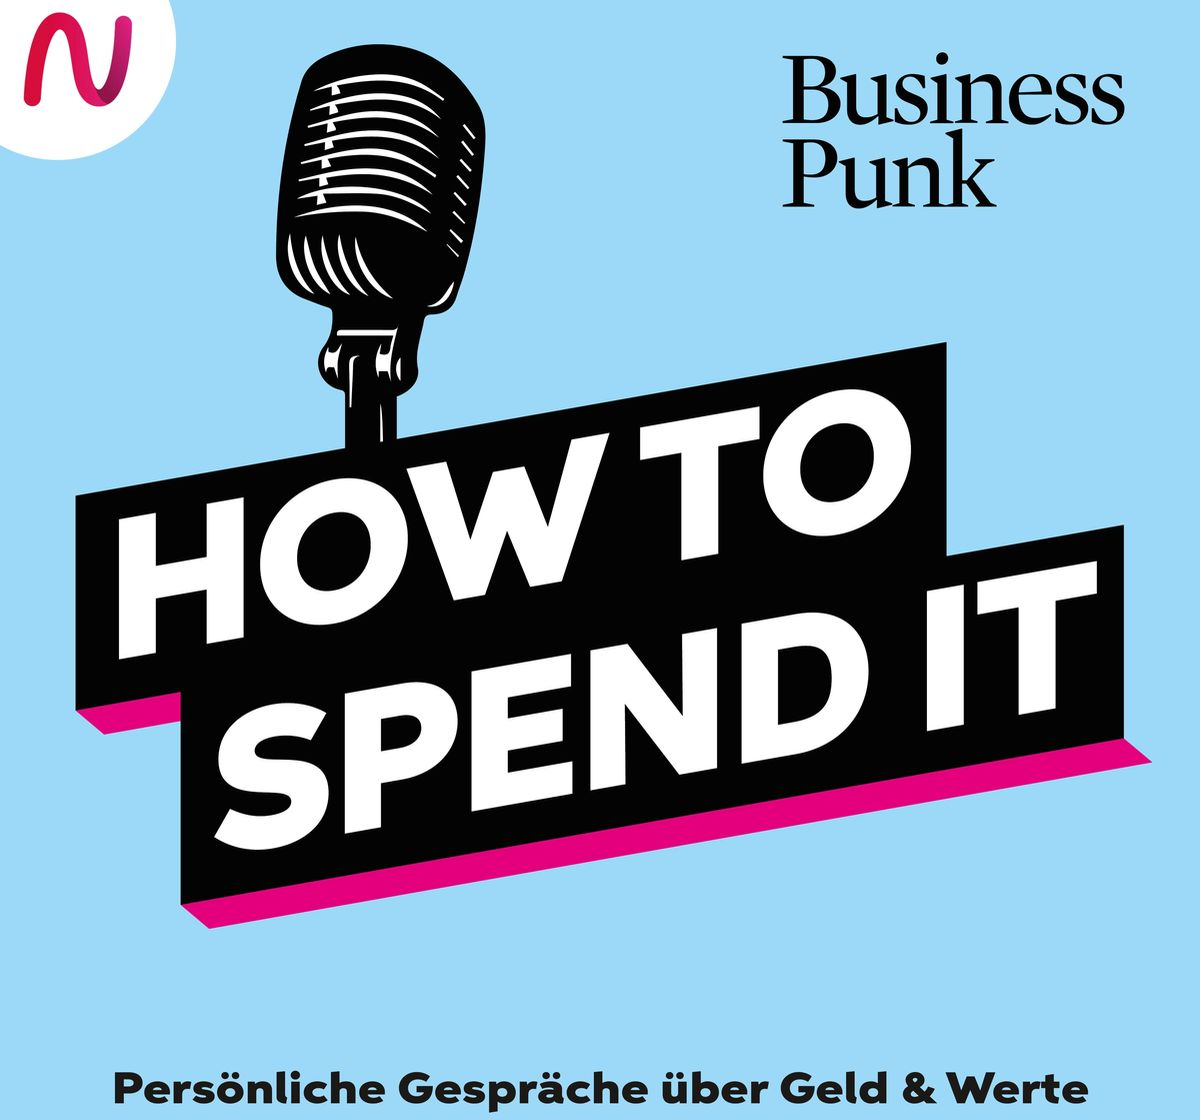 Business Punk: How To Spent It